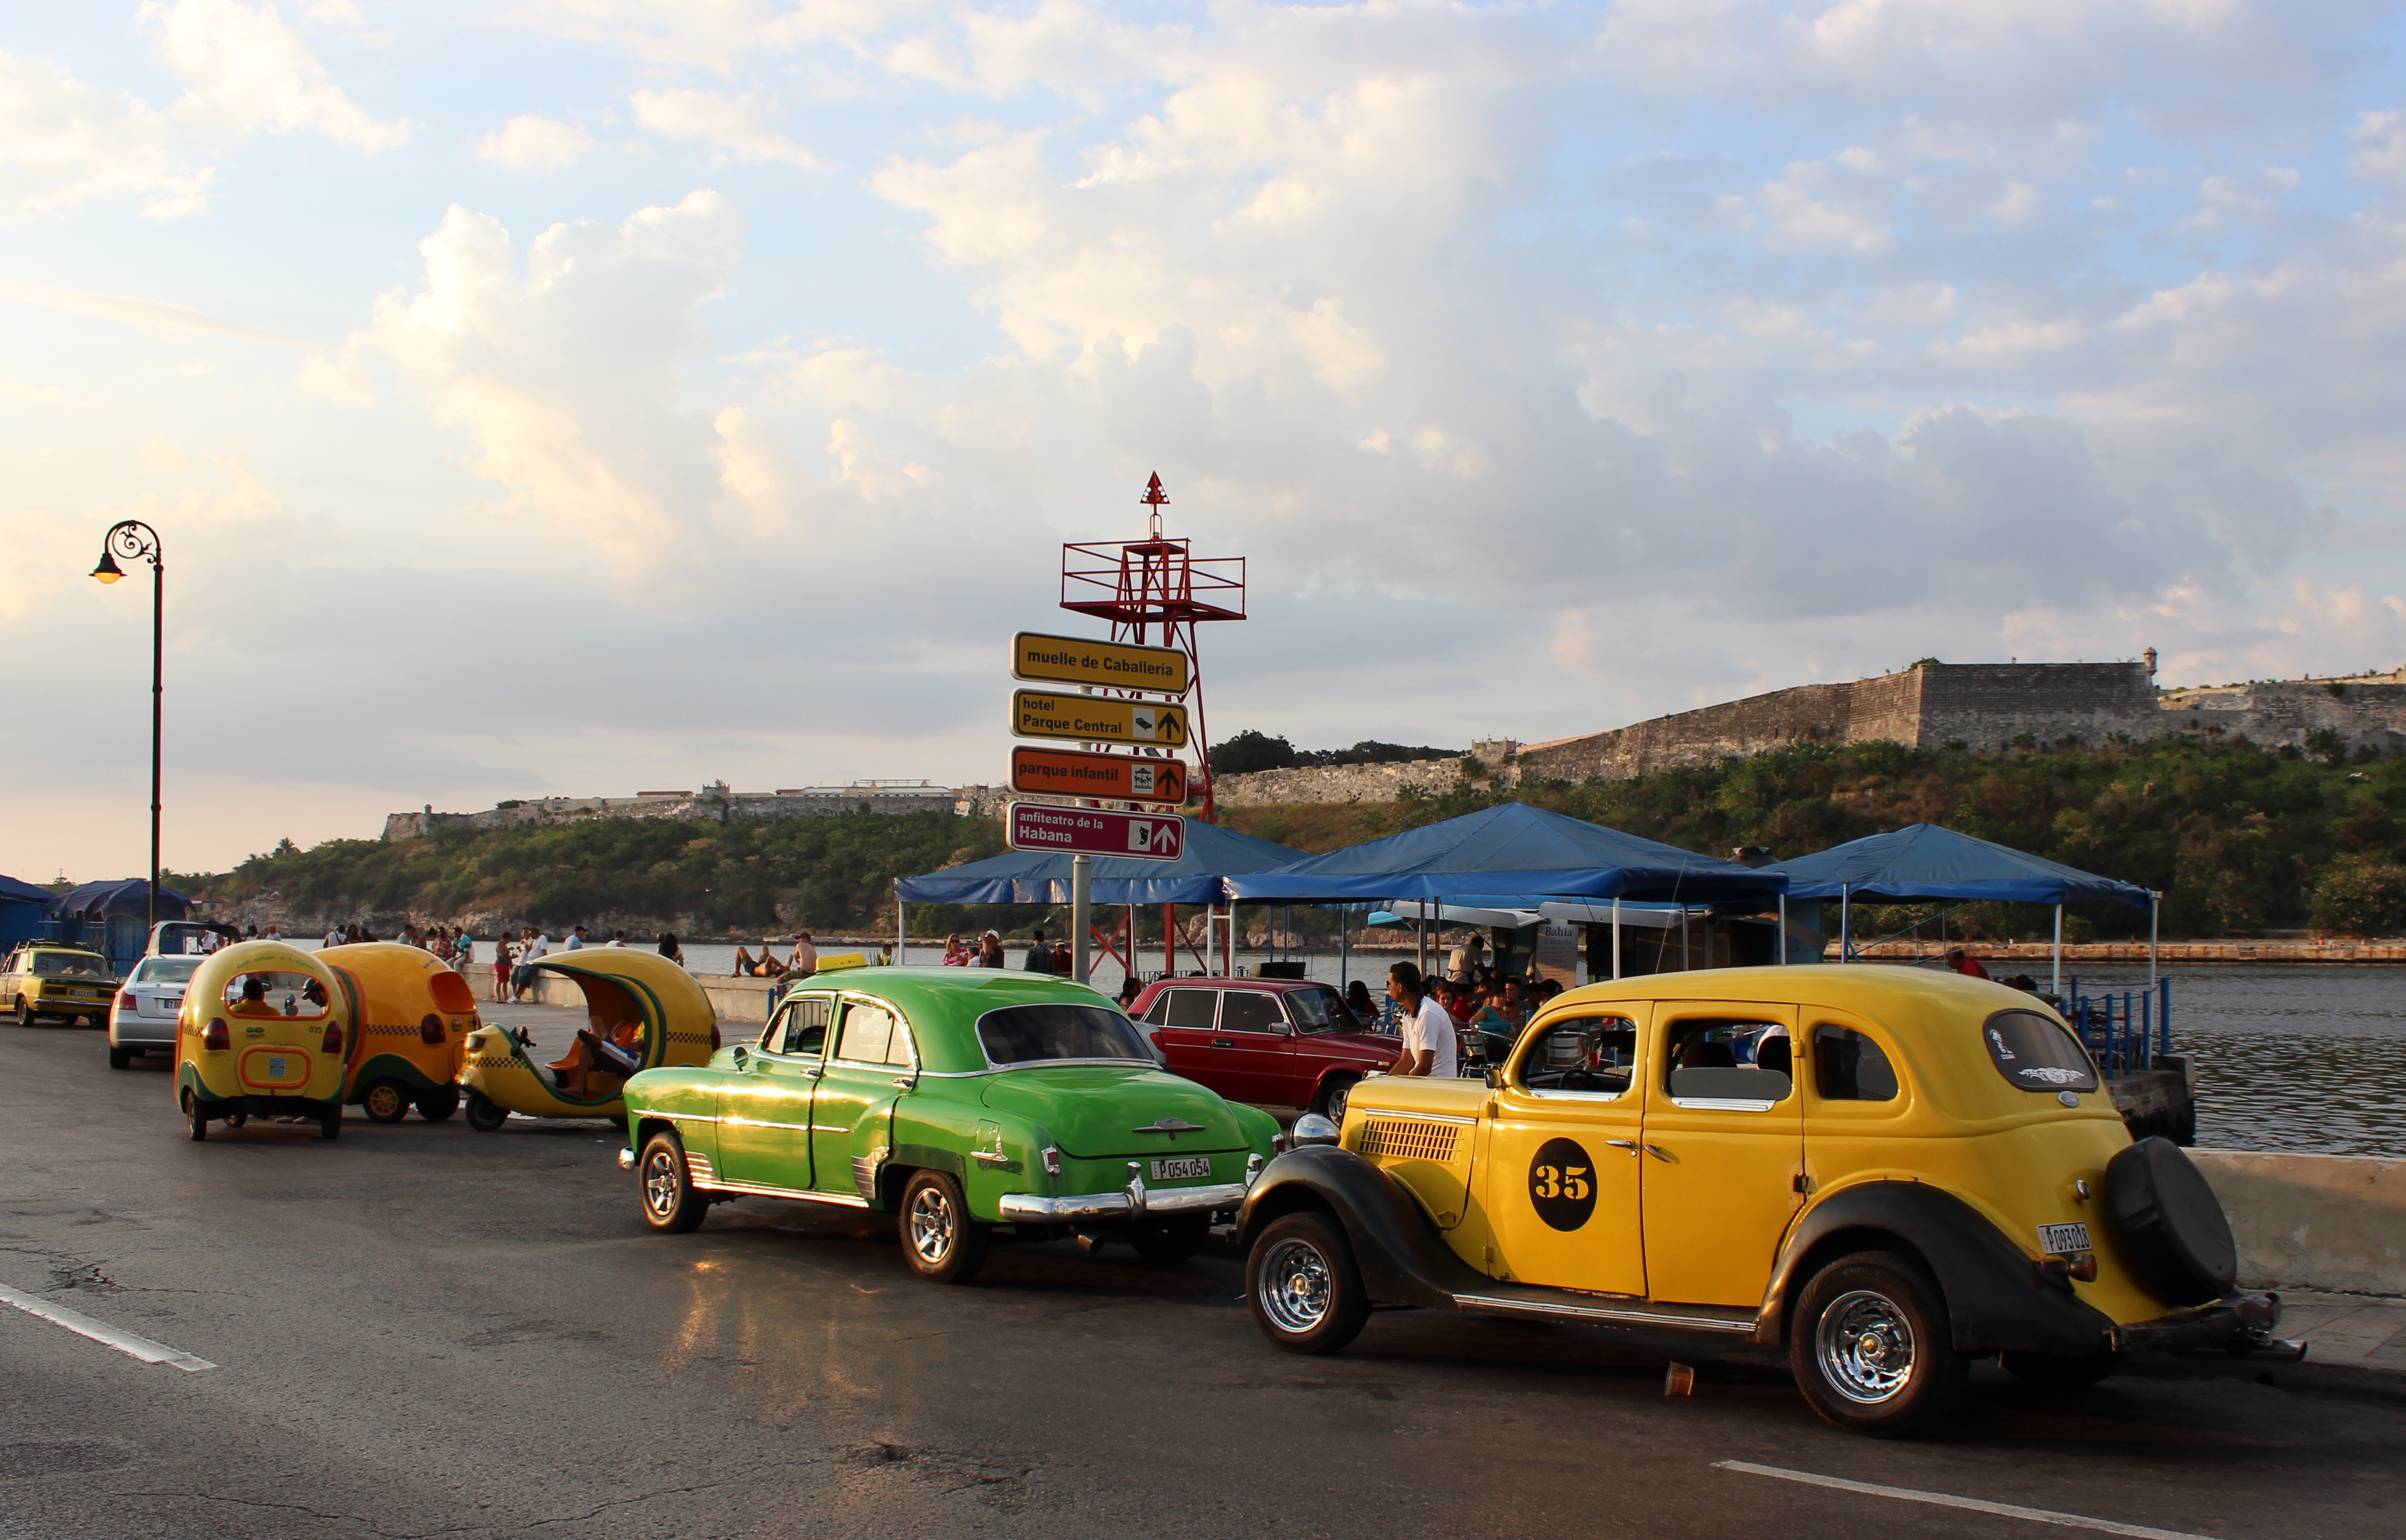 Coco cabs and vintage cars for hire wait for passengers.